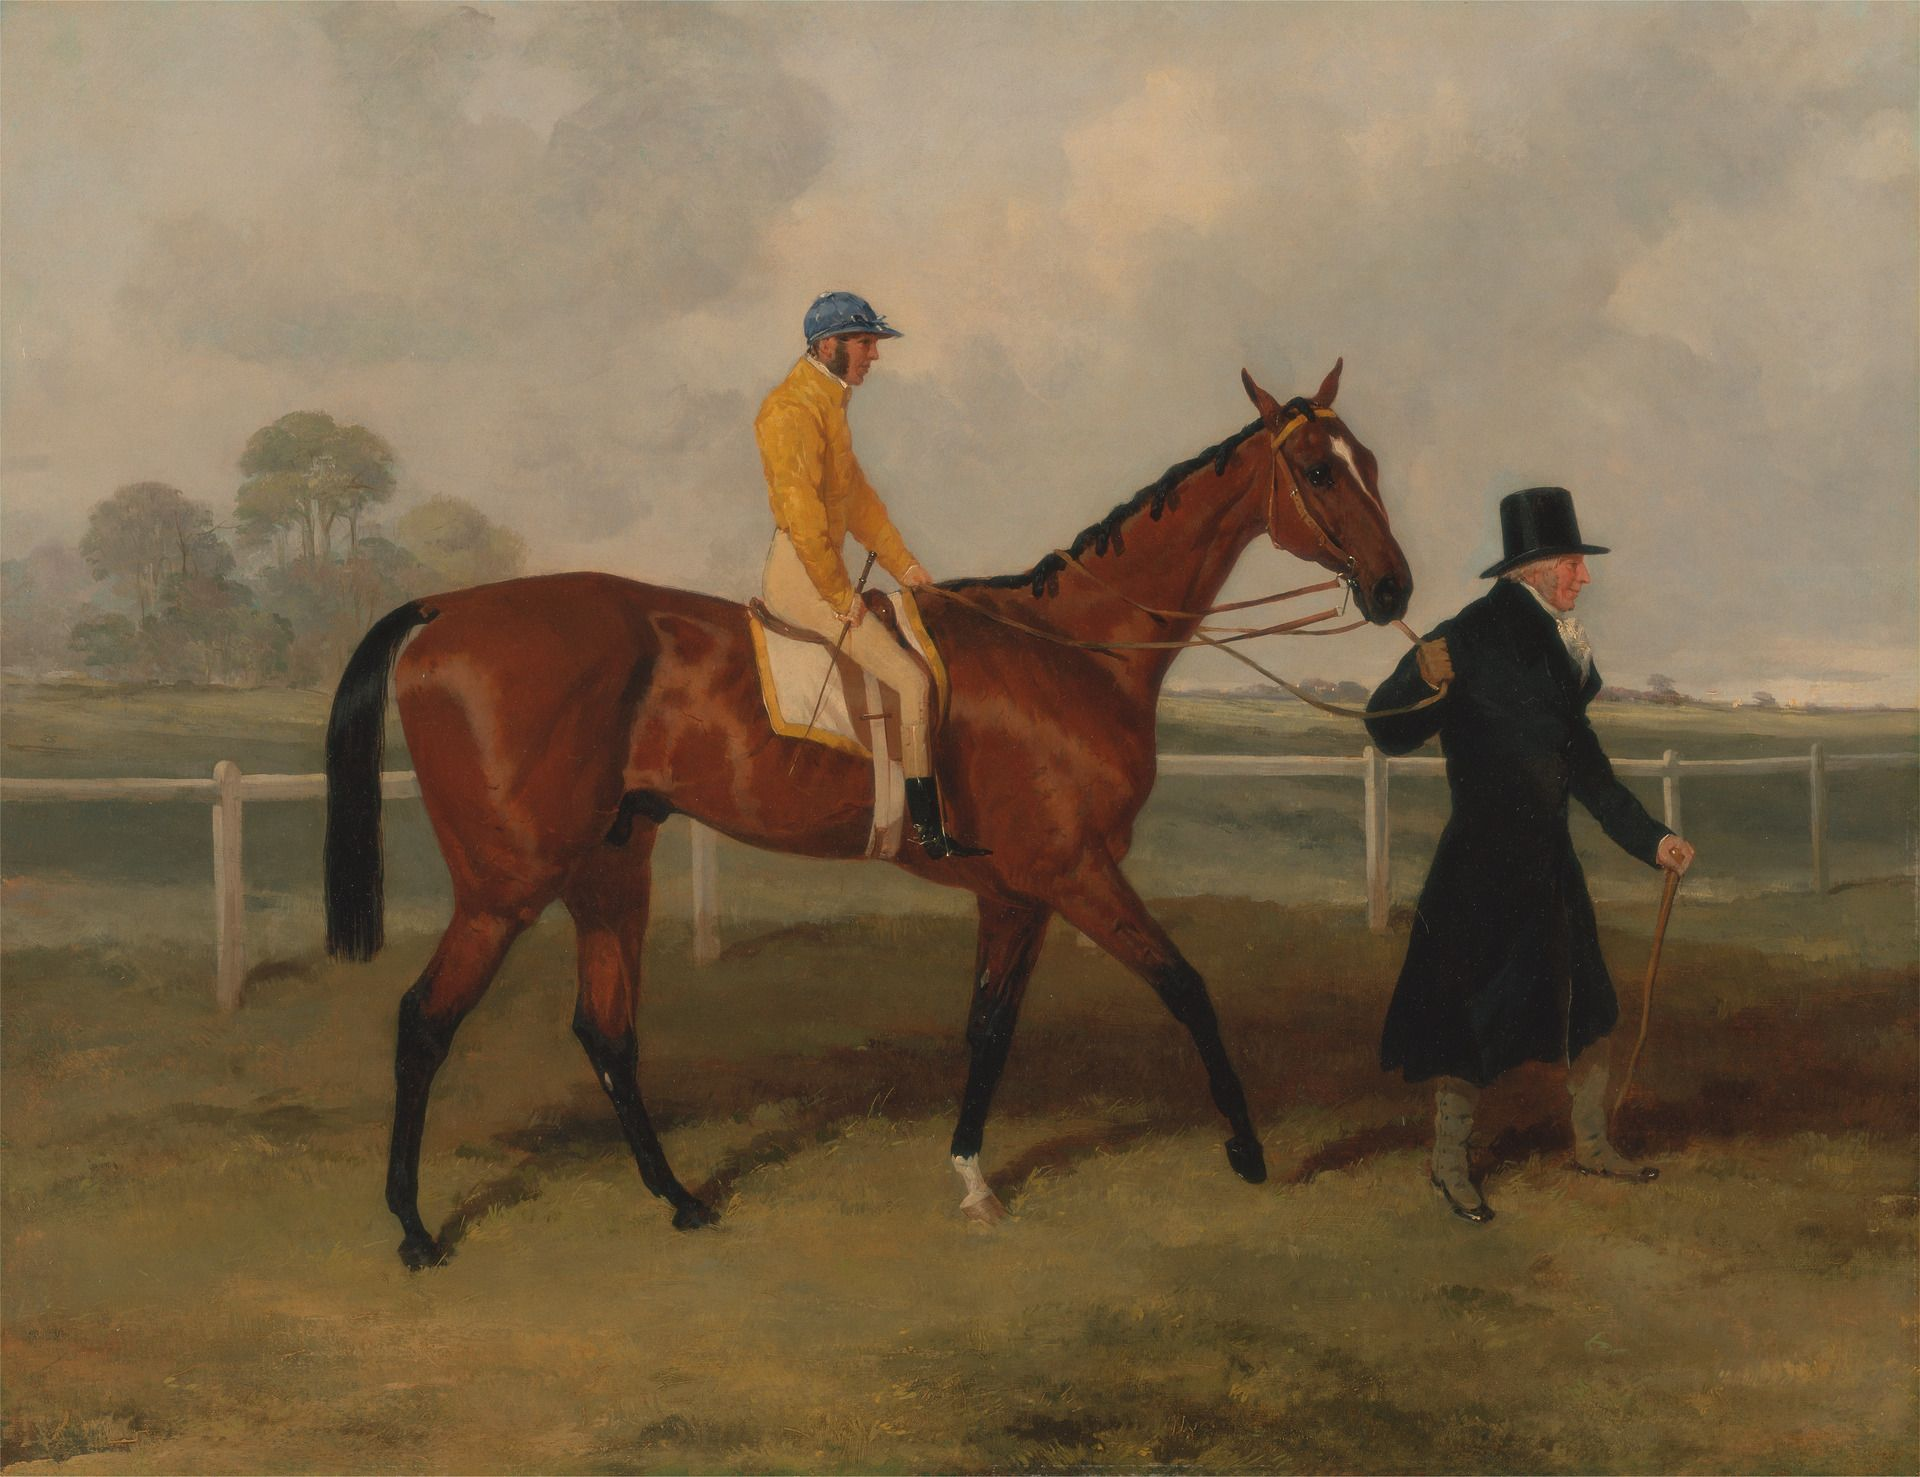 Sir Tatton Sykes Leading in the Horse 'Sir Tatton Sykes' with William Scott Up | Harry Hall | Oil Painting